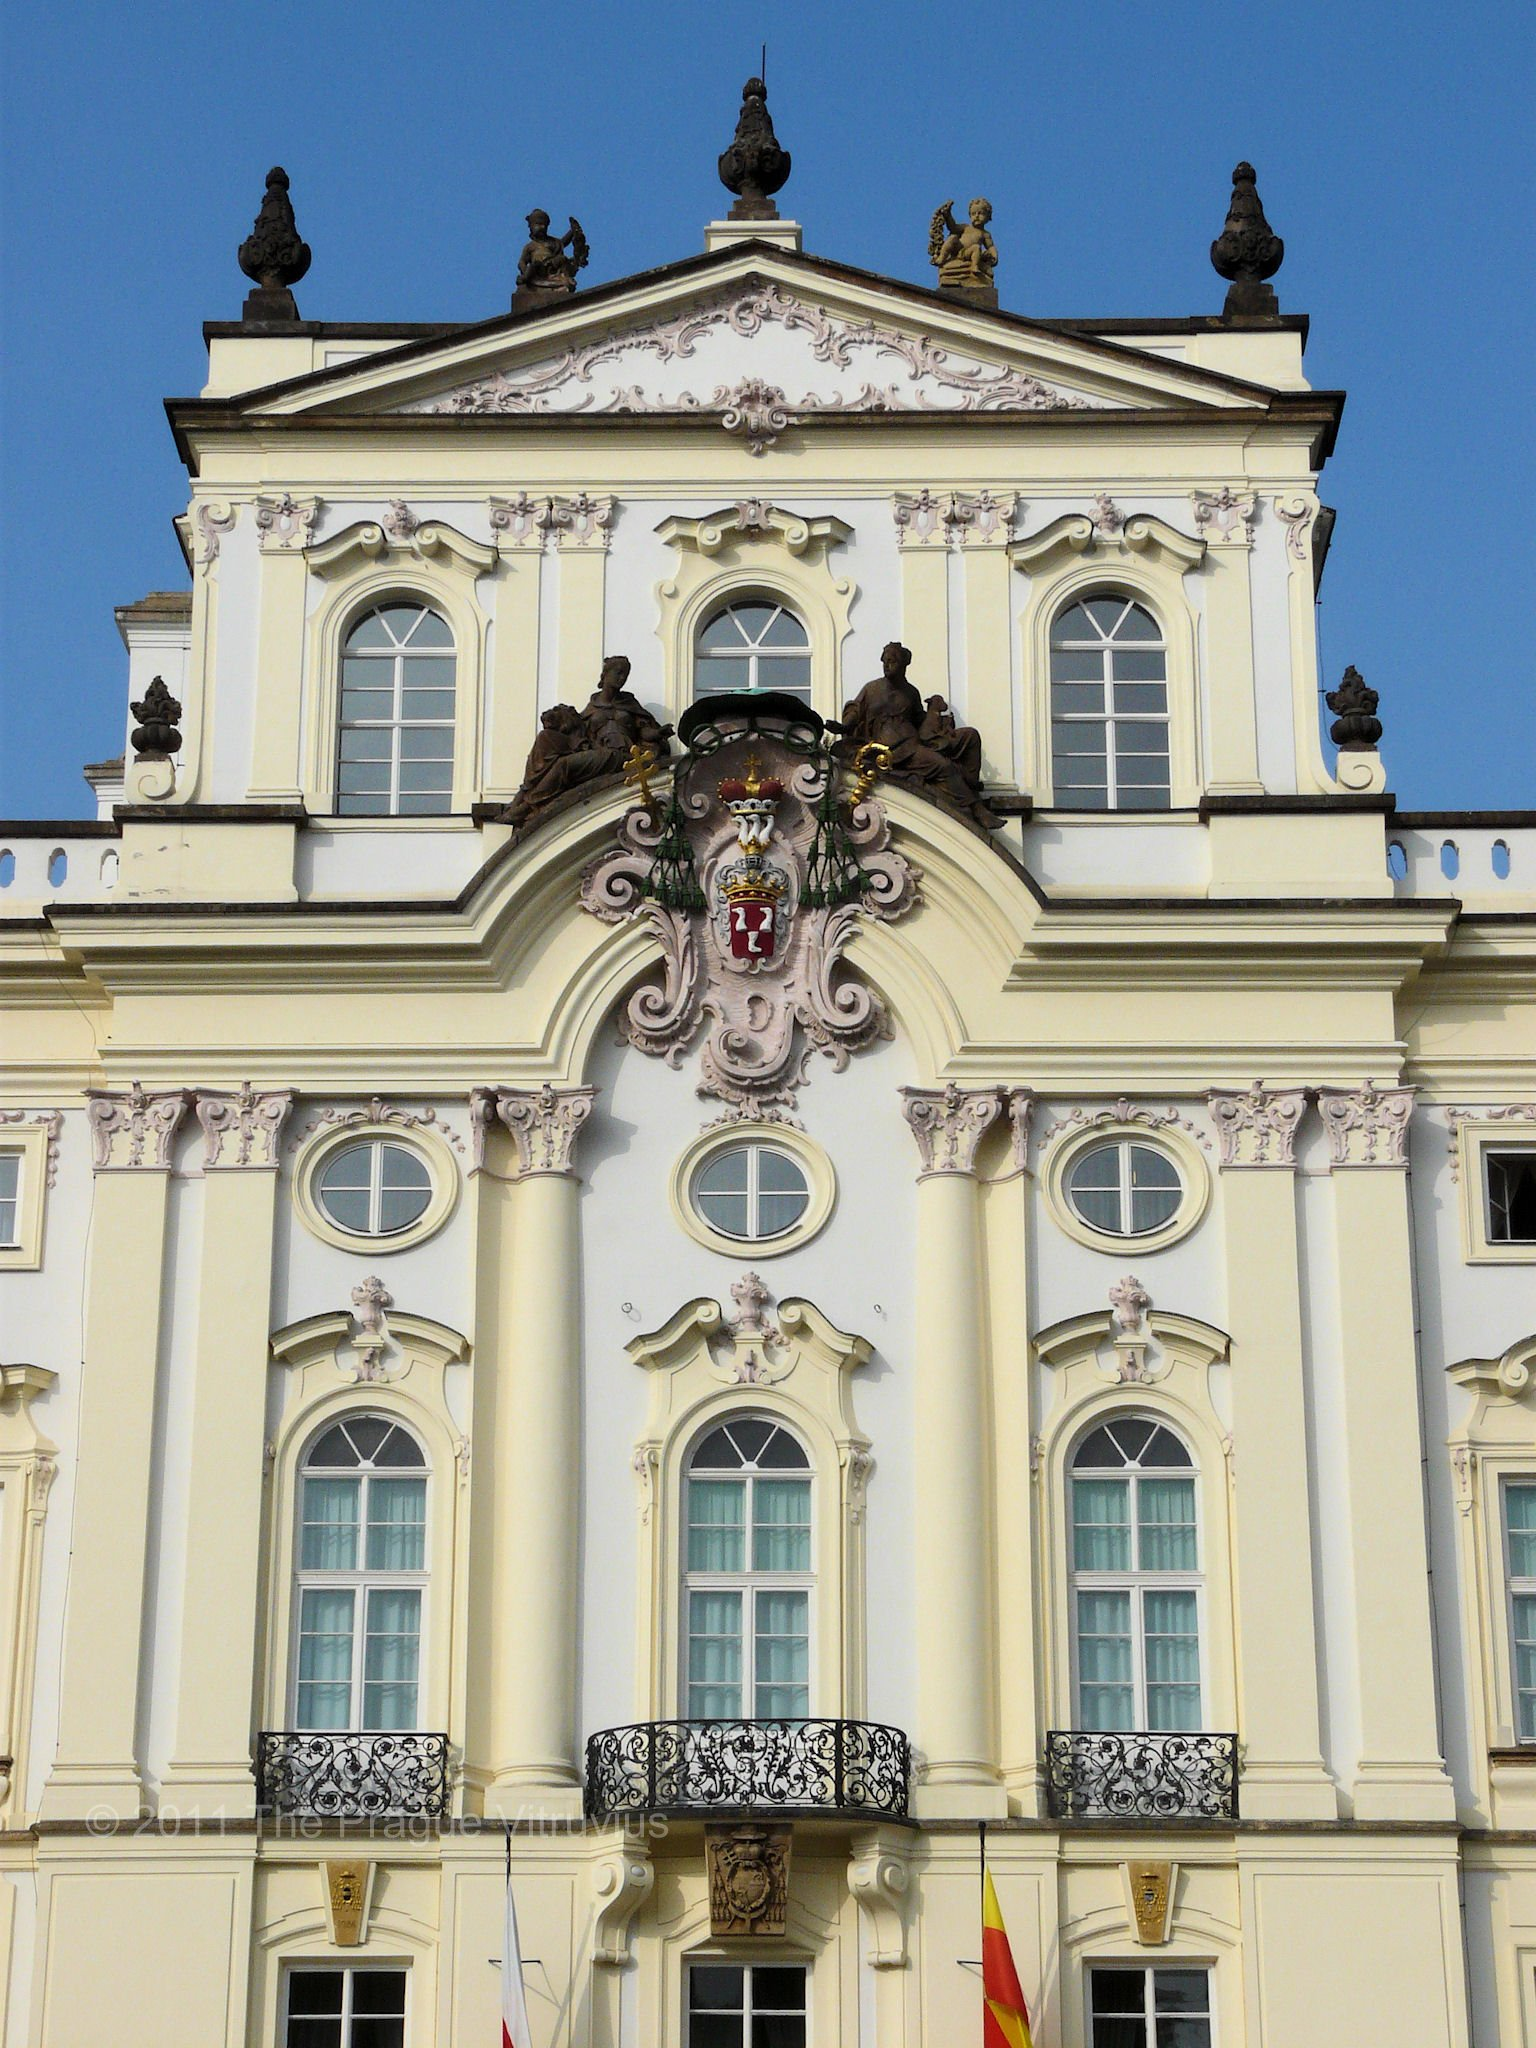 Archbishop's Palace in Prague